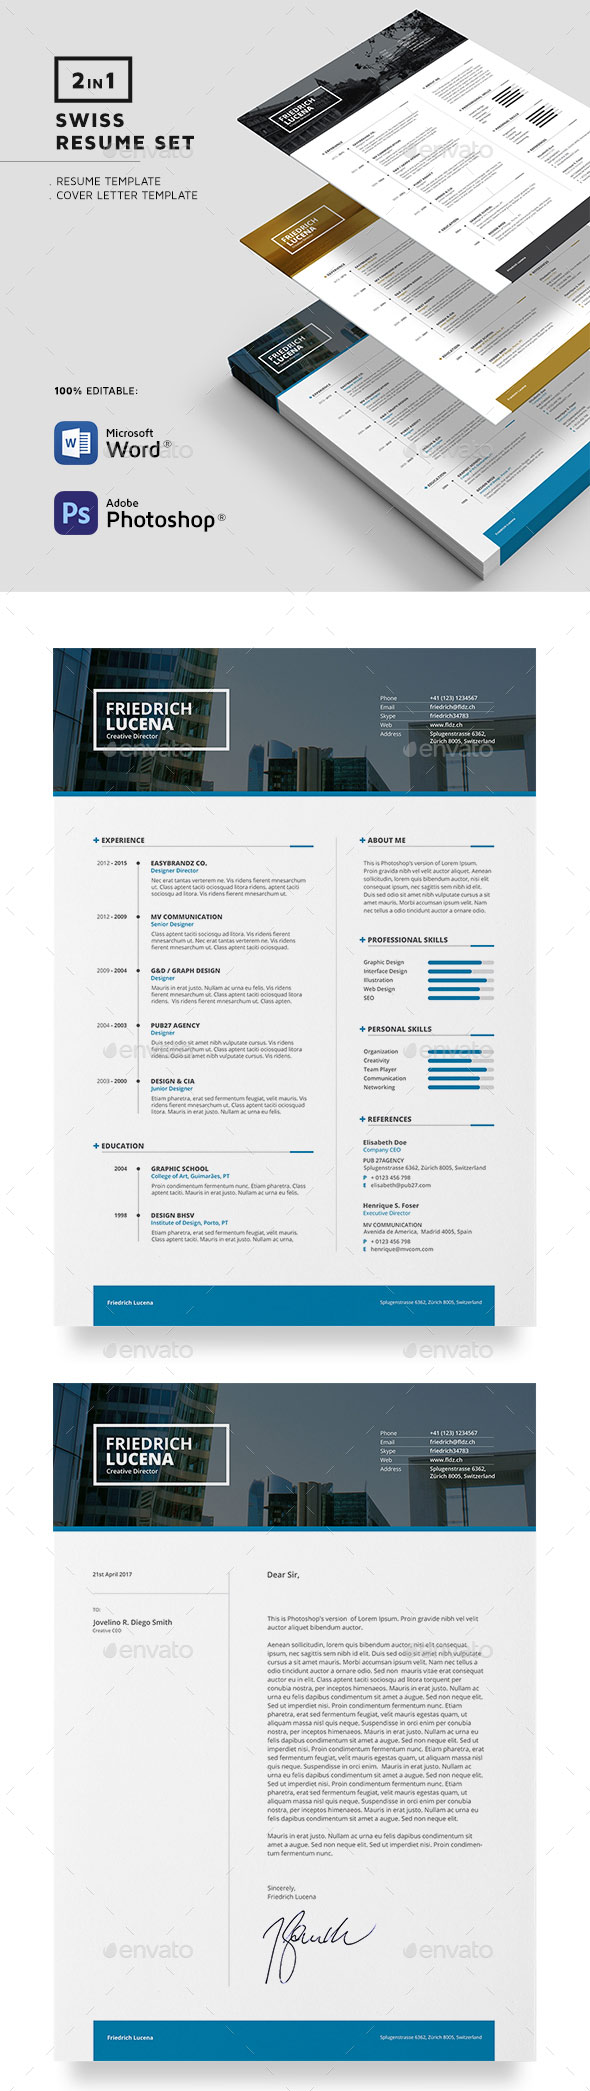 Swiss Resume Template With Organize Resume Sections And Formatting  How To Organize A Resume